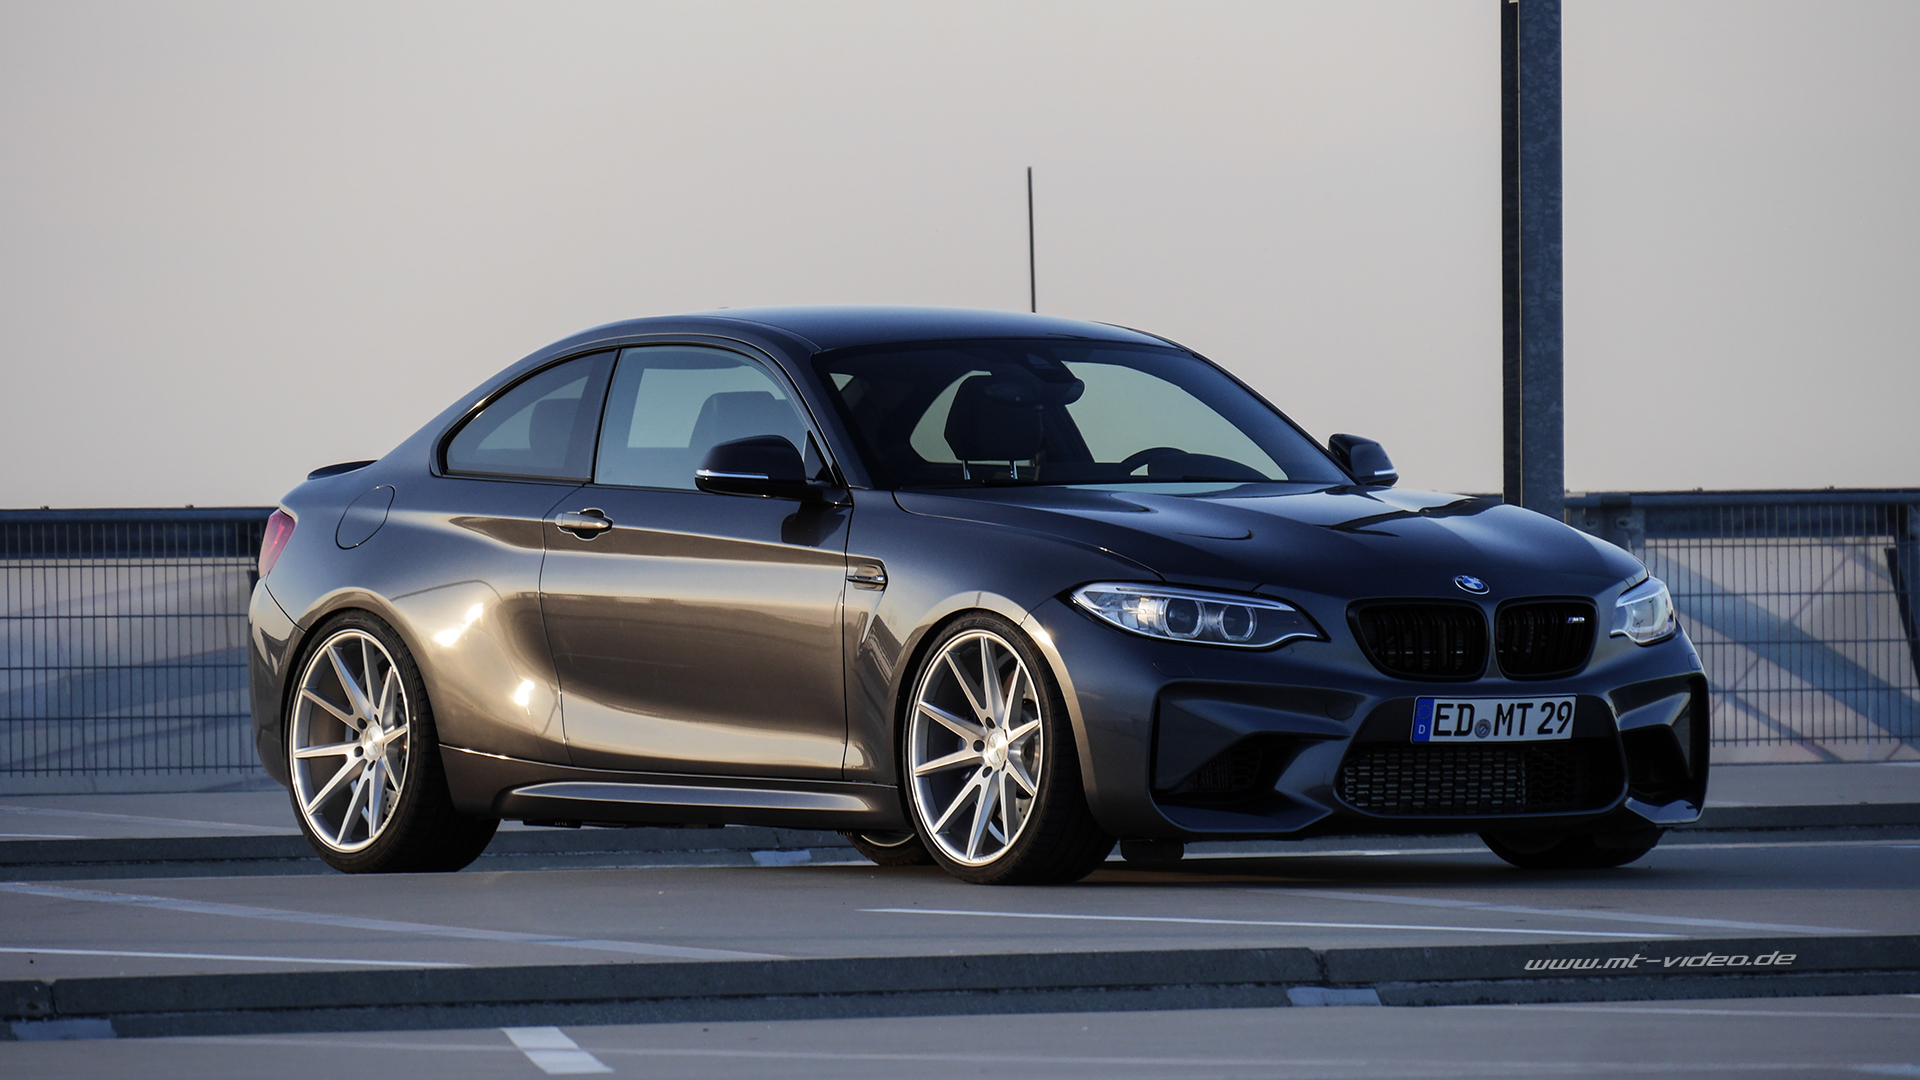 New Photoshoot Shows The Best Of Bmw M2 Bmw Sg Bmw Singapore Owners Community